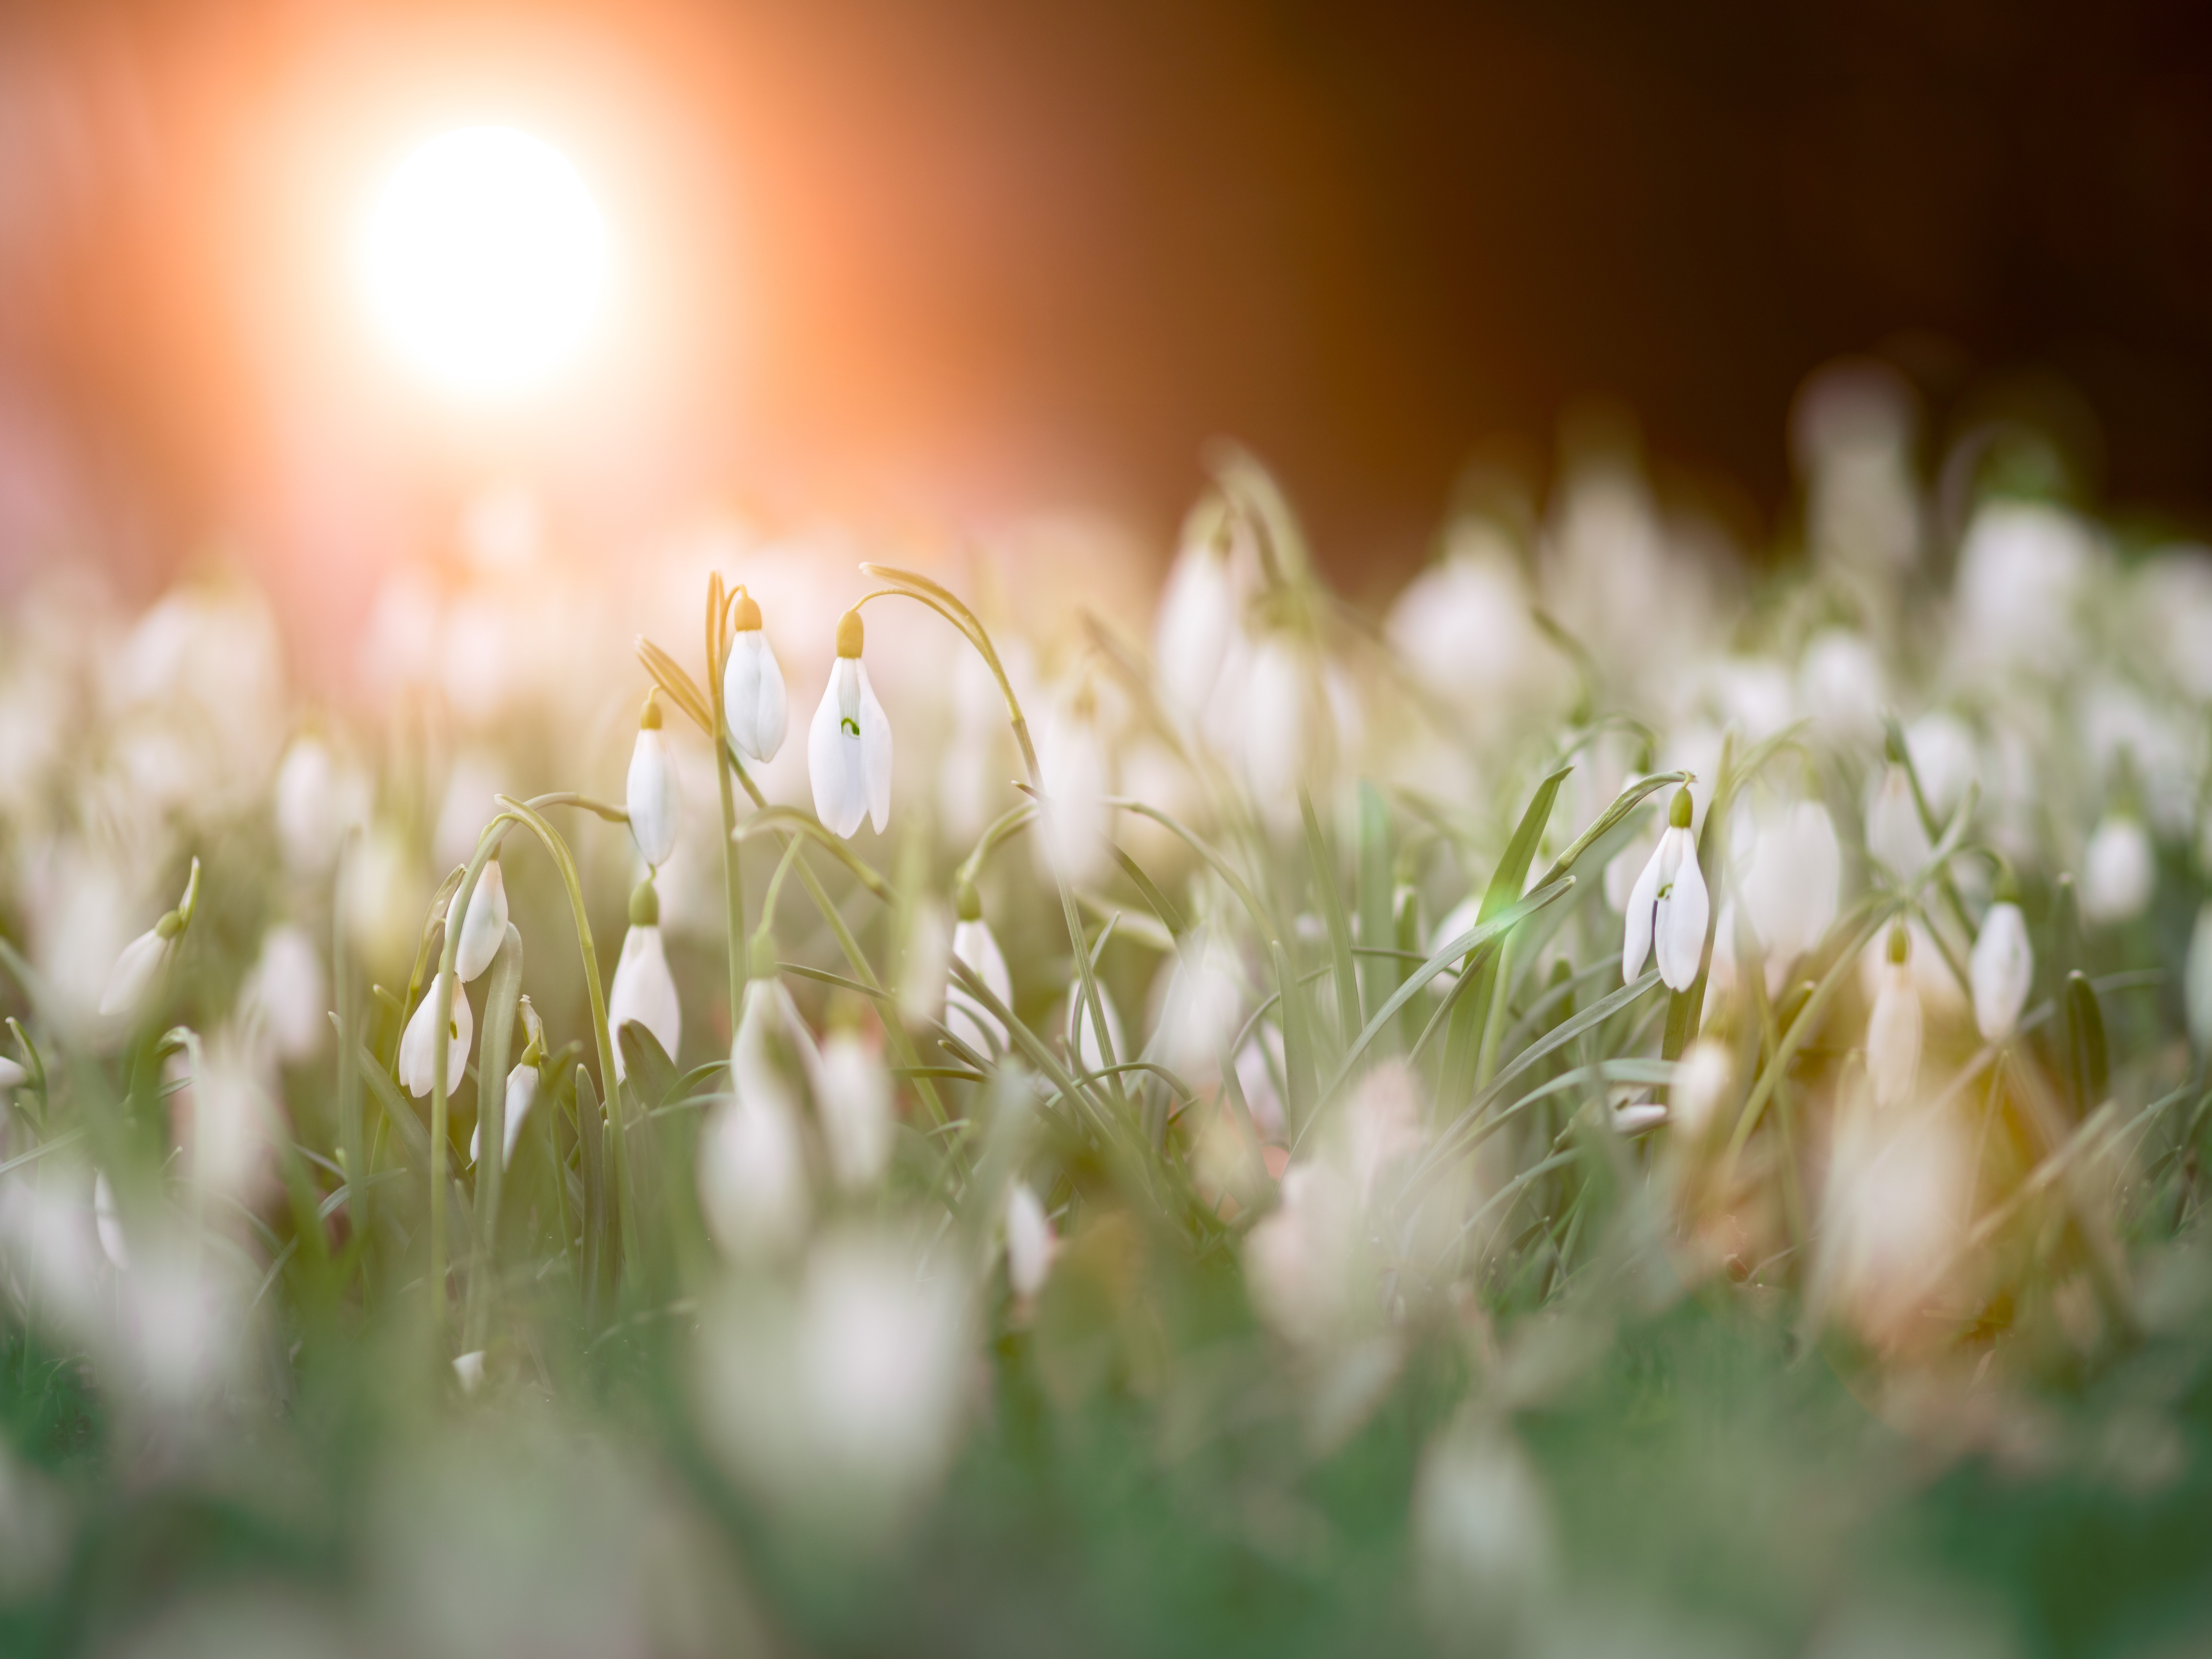 Free Photo Close Up Photo Of A Bed Of White Flowers Season